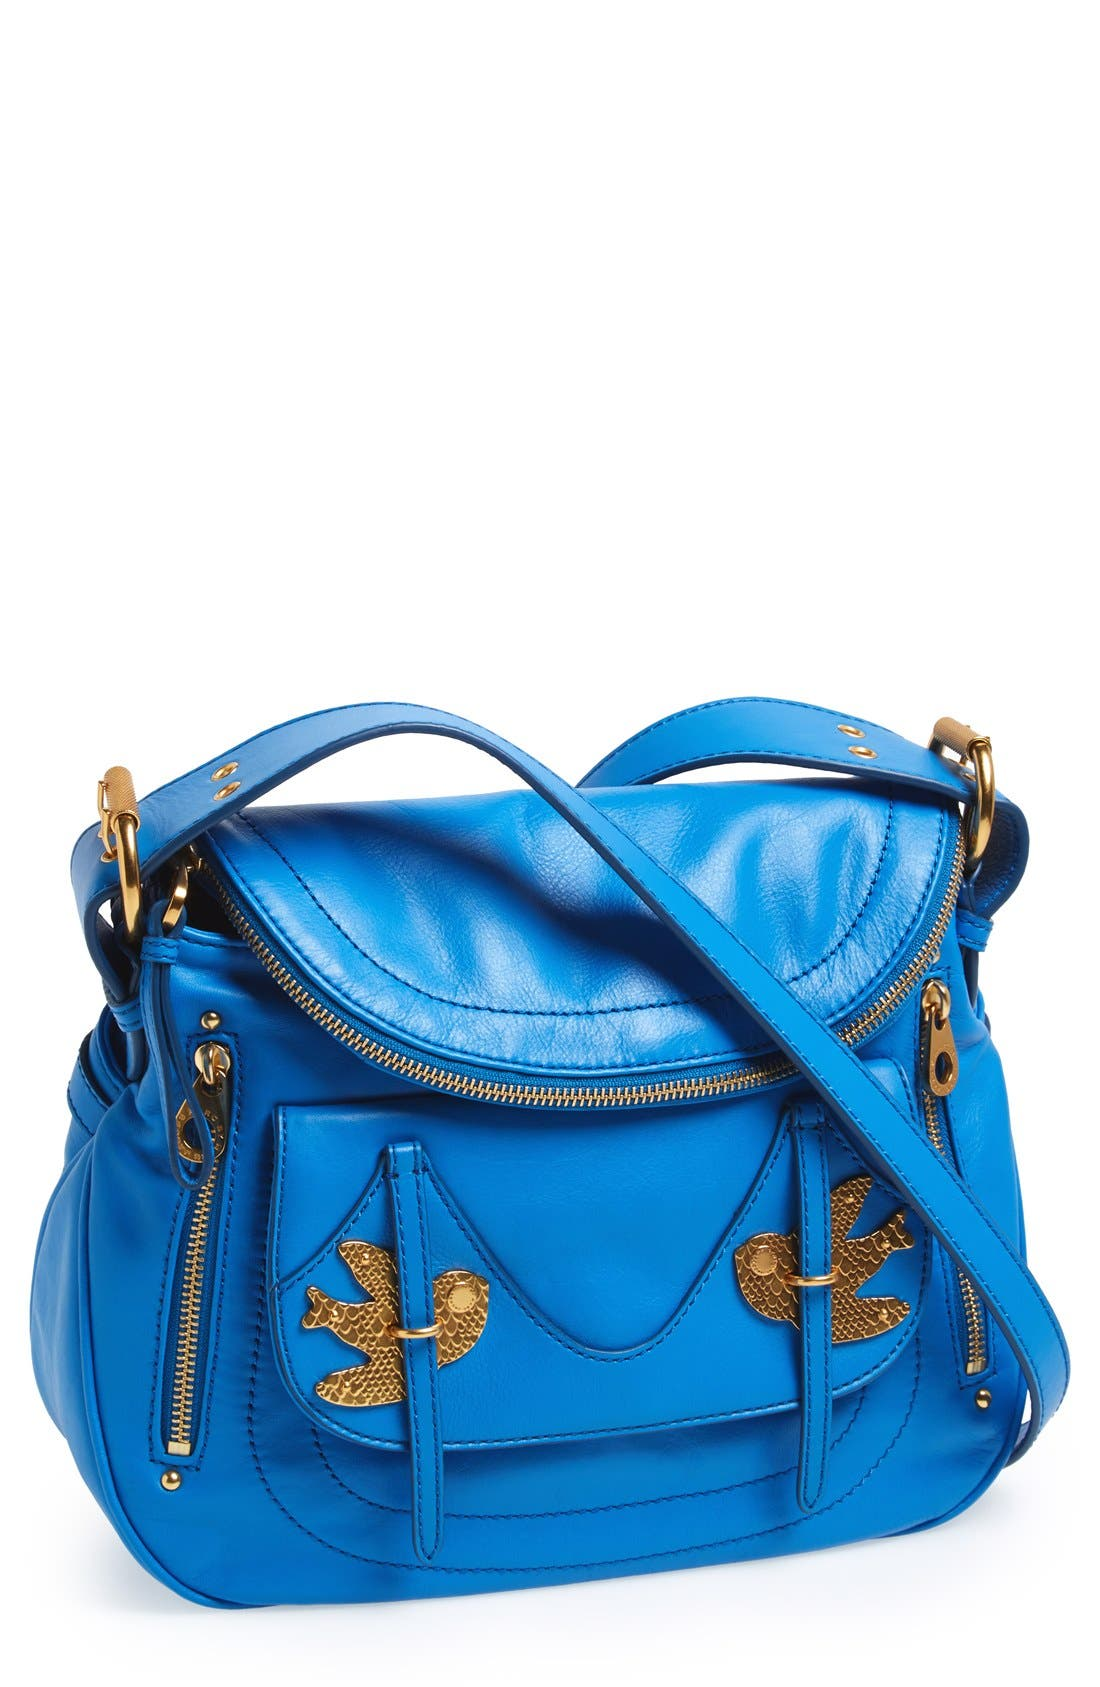 Main Image - MARC BY MARC JACOBS 'Petal to the Metal - Natasha' Flap Crossbody Bag, Medium